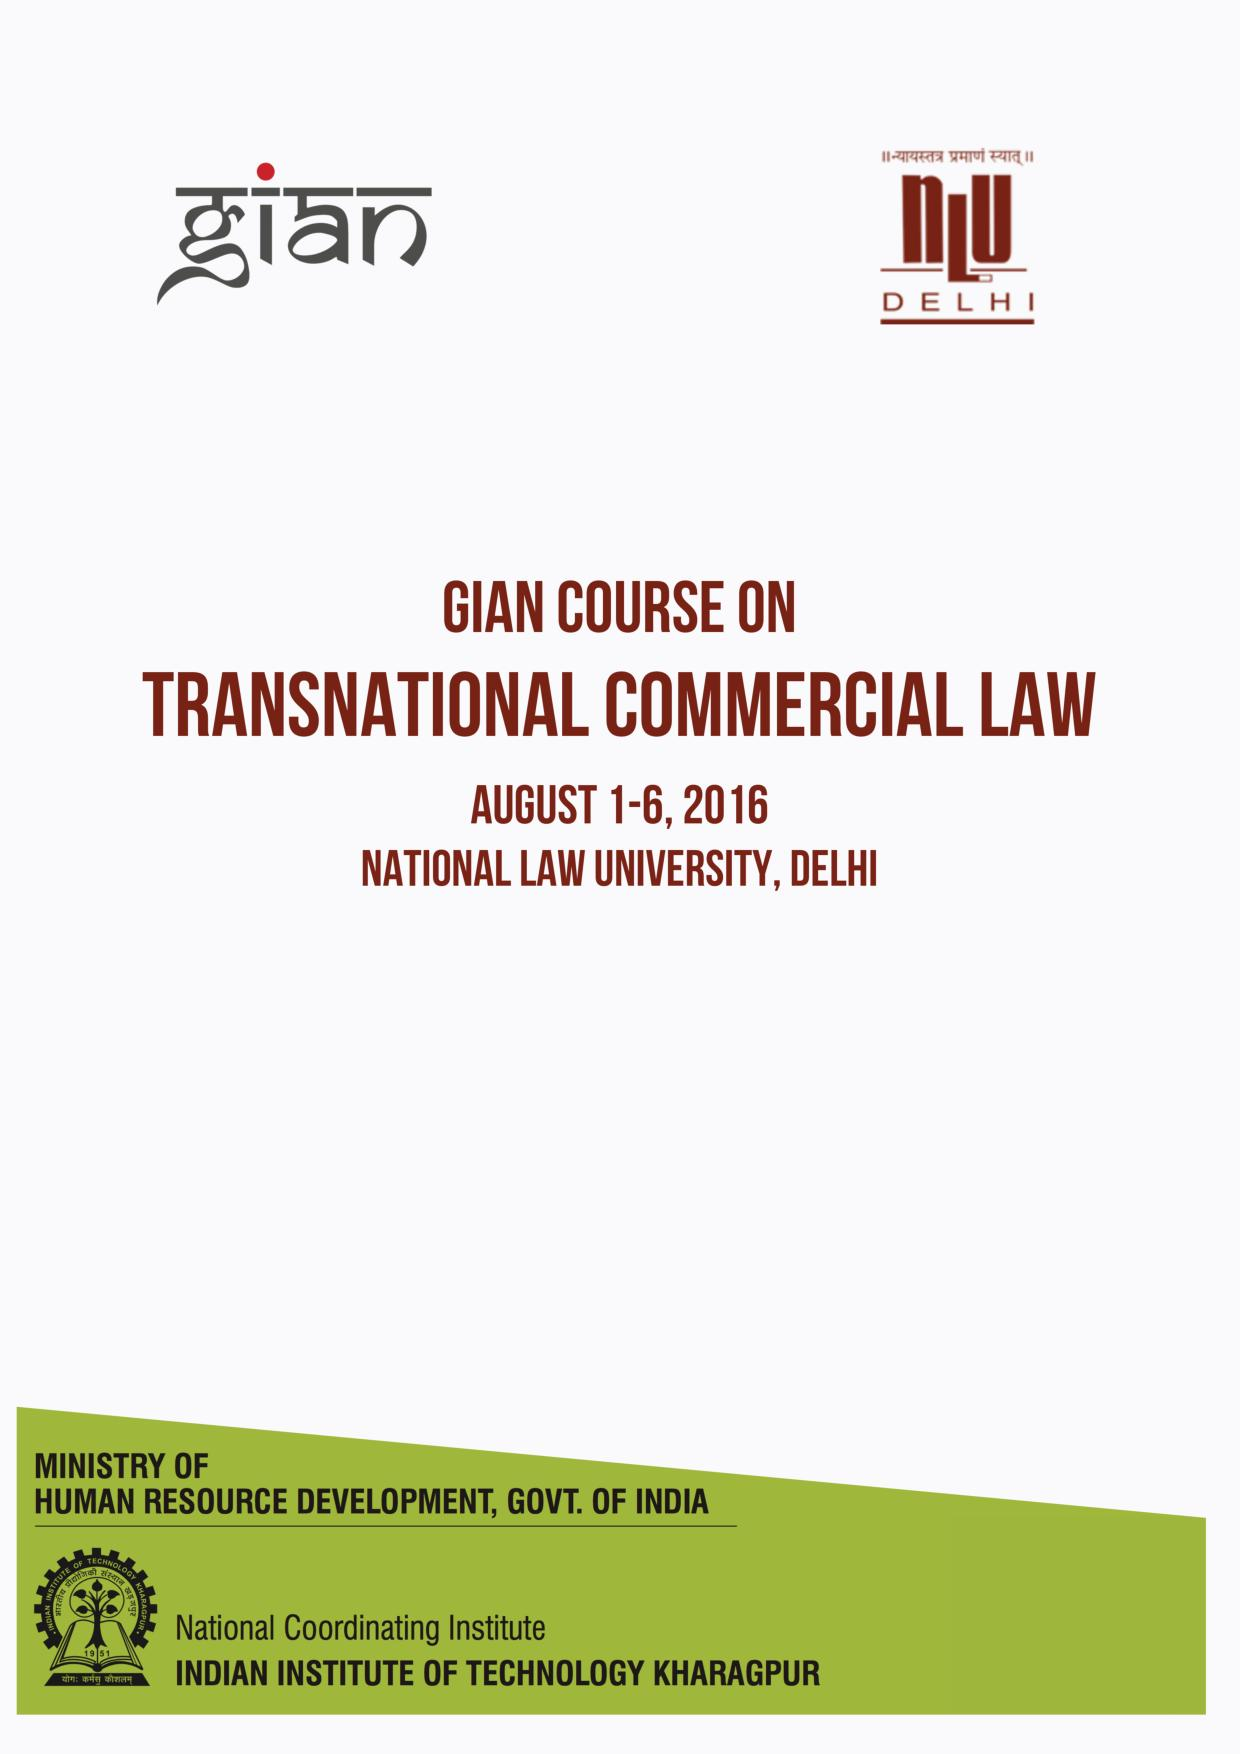 NLU Delhi Gian Course on Transnational Commercial Course